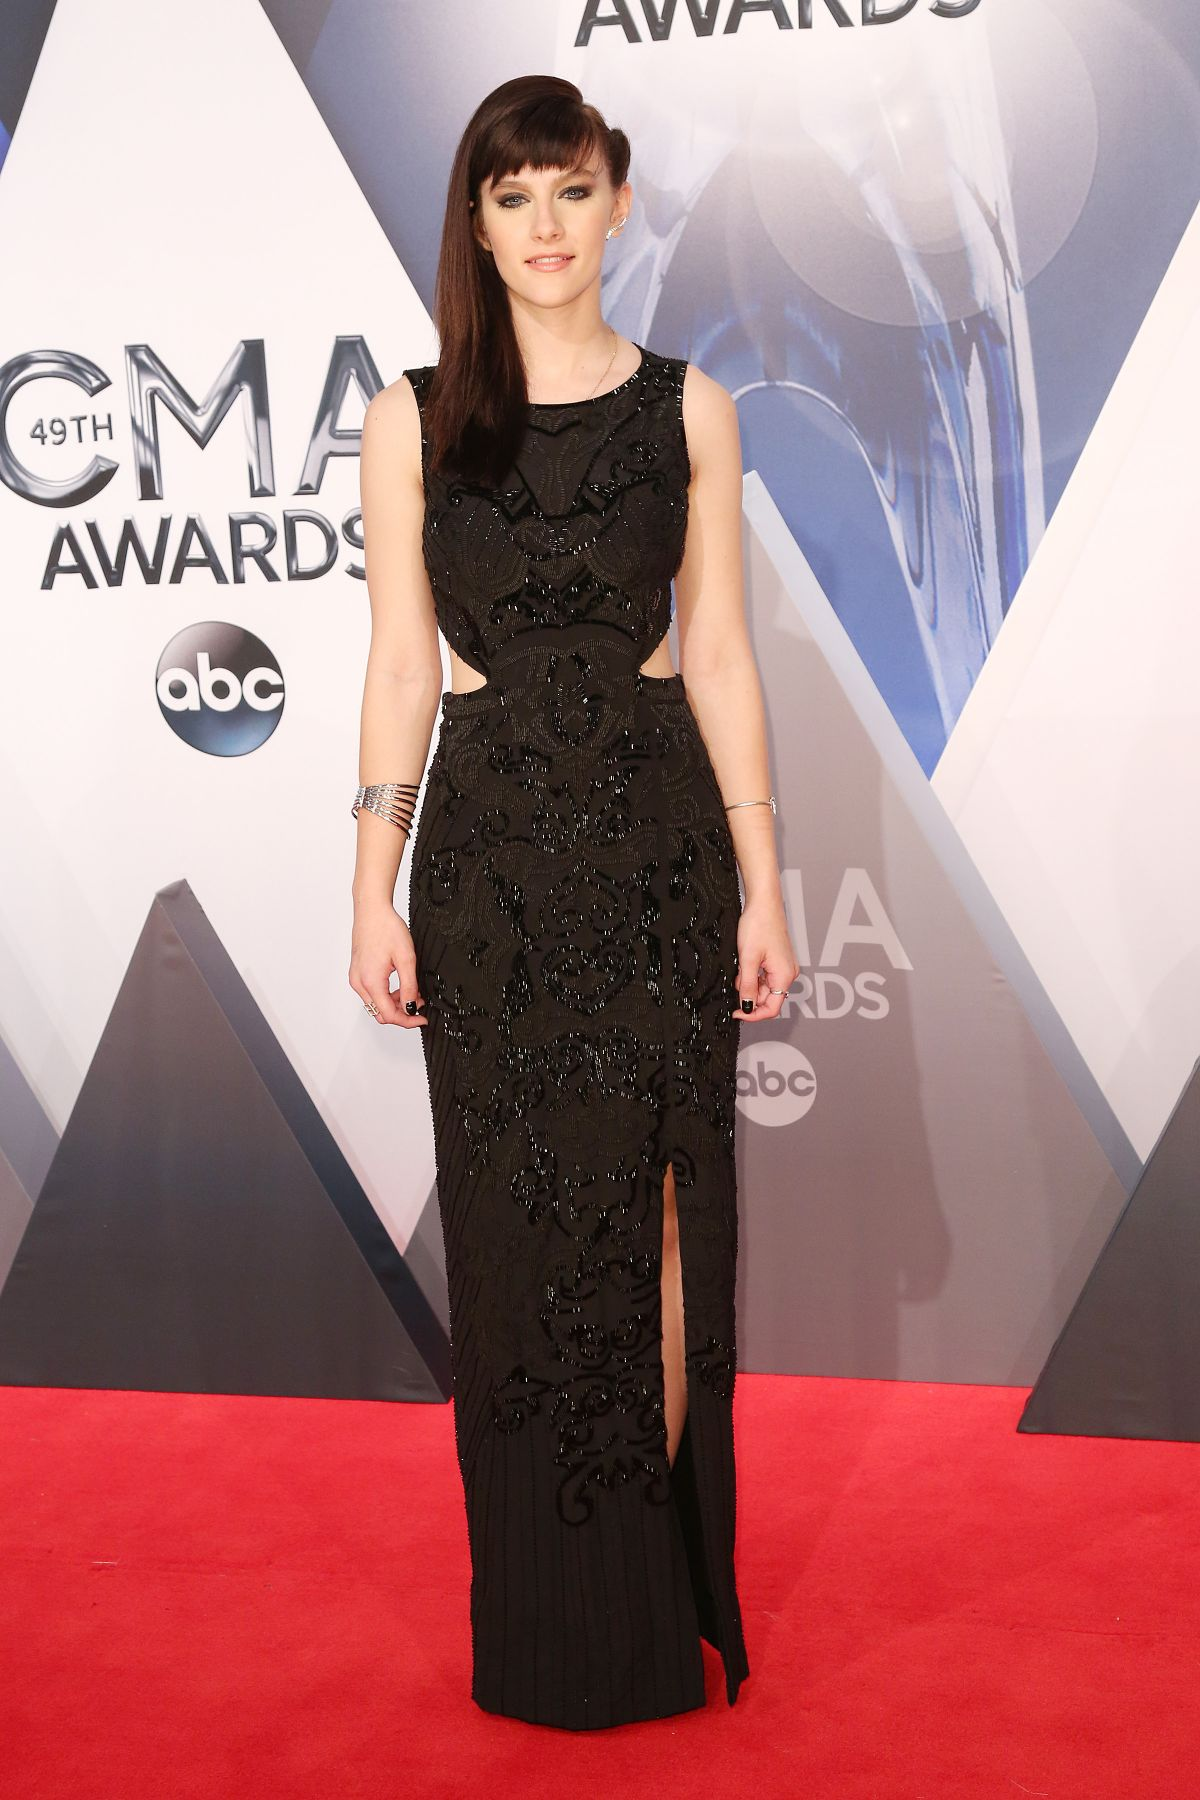 AUBREY PEEPLES at 49th Annual CMA Awards in Nashville 11/04/2015